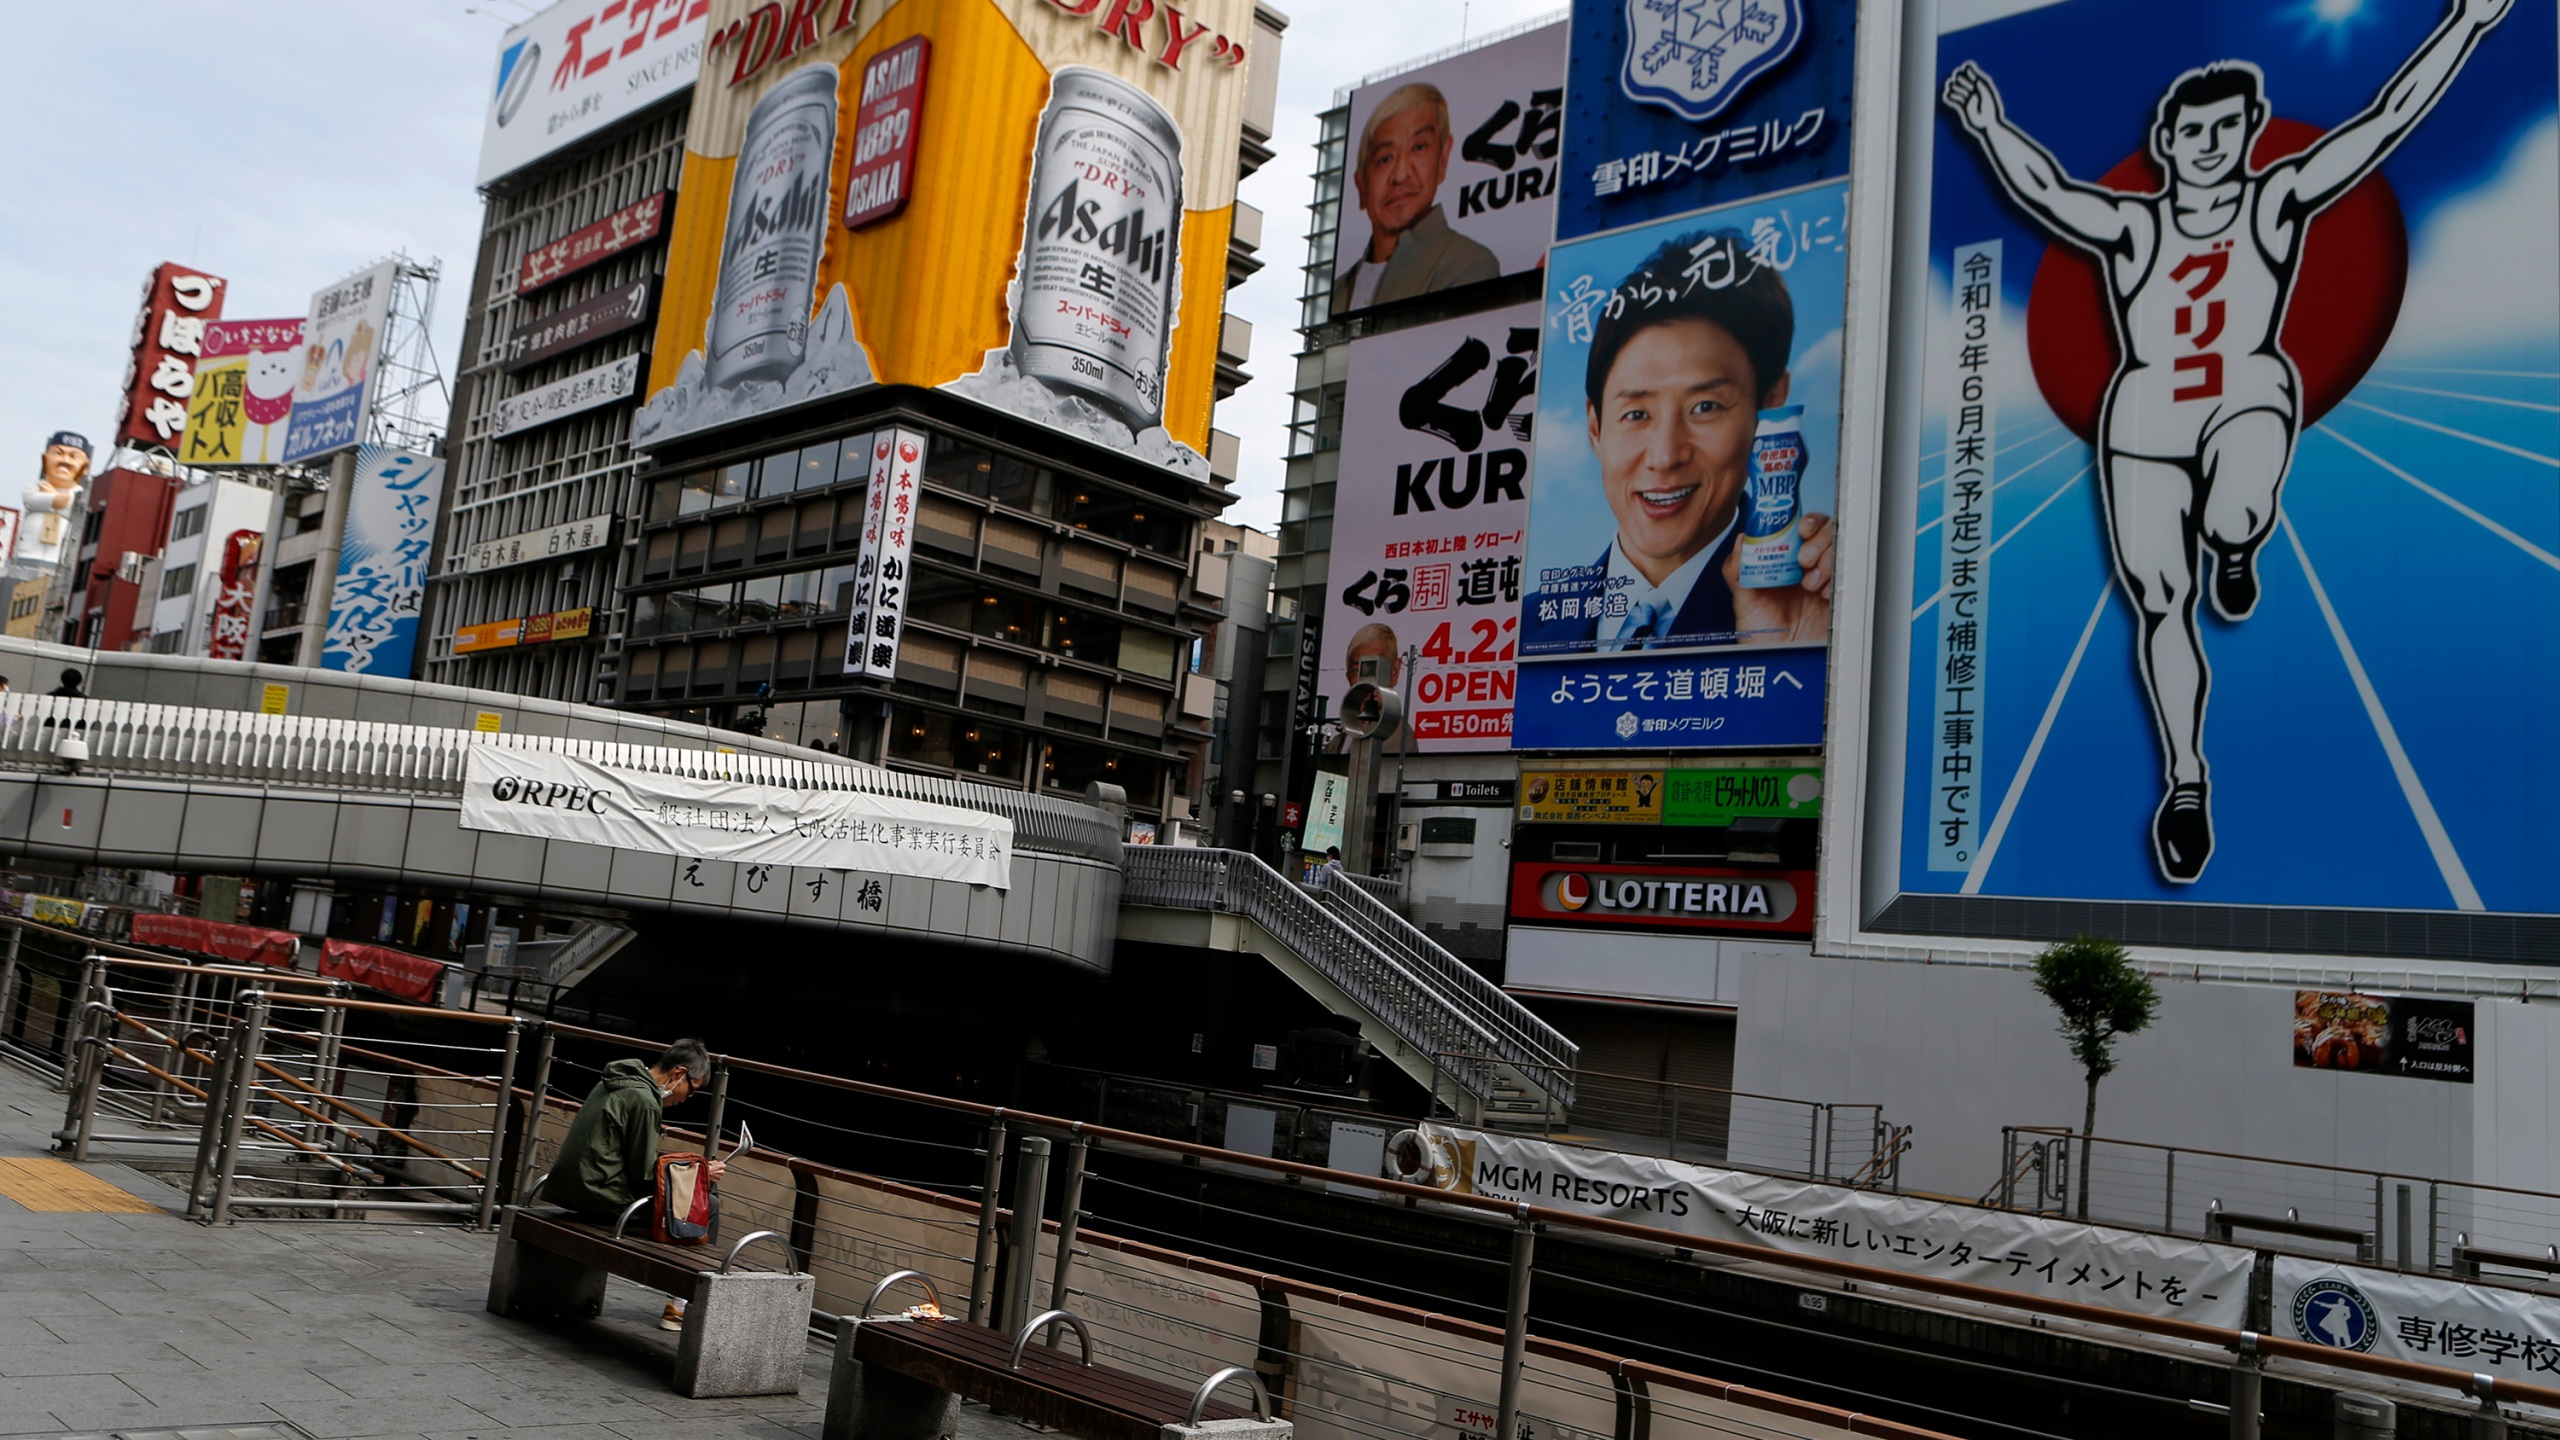 A man wearing protective face mask sits a bench at almost empty Dotonbori, one of Osaka's most popular tourist areas on April 23, 2021 in Osaka, Japan. (Buddhika Weerasinghe/Getty Images)